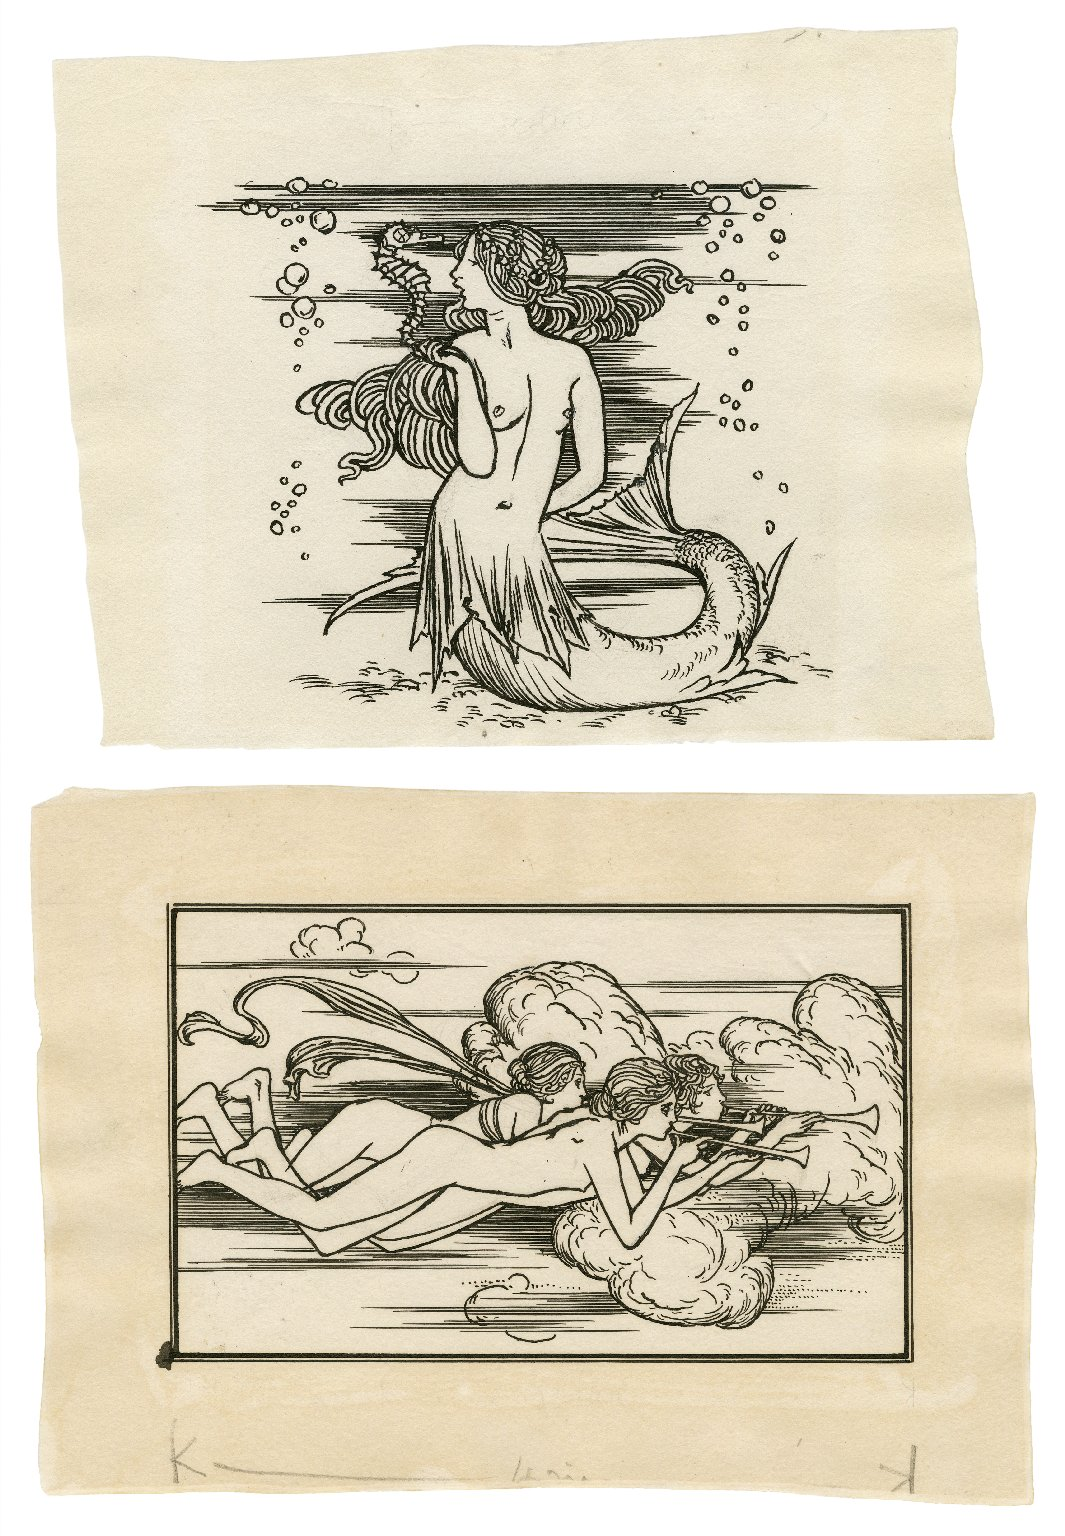 [Decorative head- and tail-piece to page 24 of Bell's edition of The tempest] [graphic] / [Robert Anning Bell].